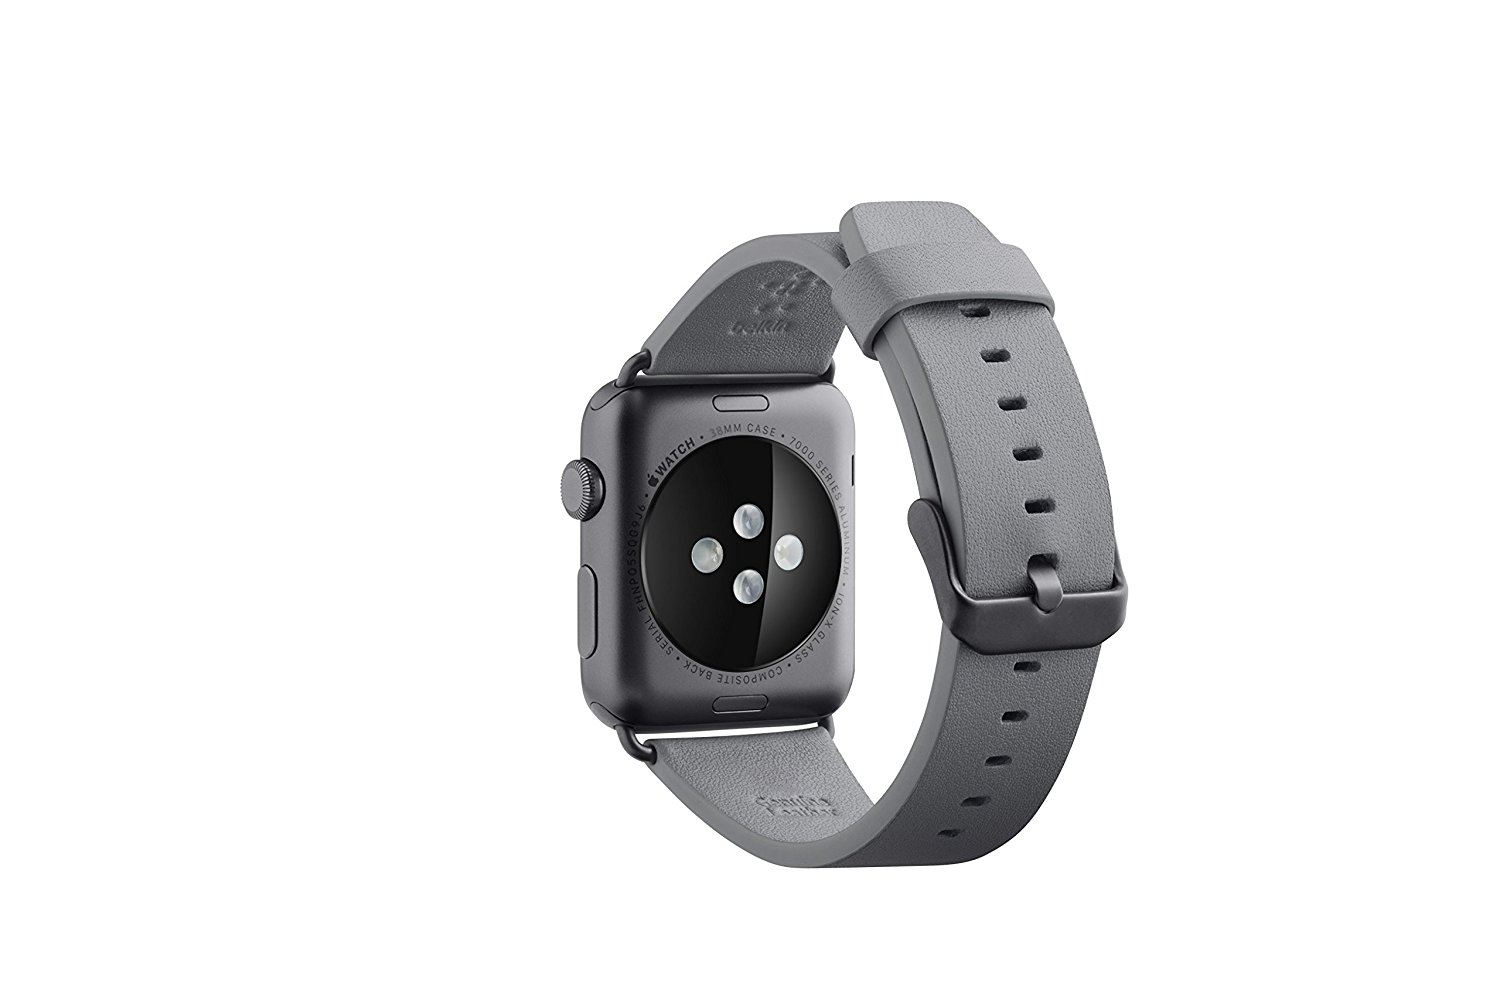 Belkin-Smart-Classic-Leather-Band-Strap-Wristband-for-Apple-Watch-42mm-and-38mm